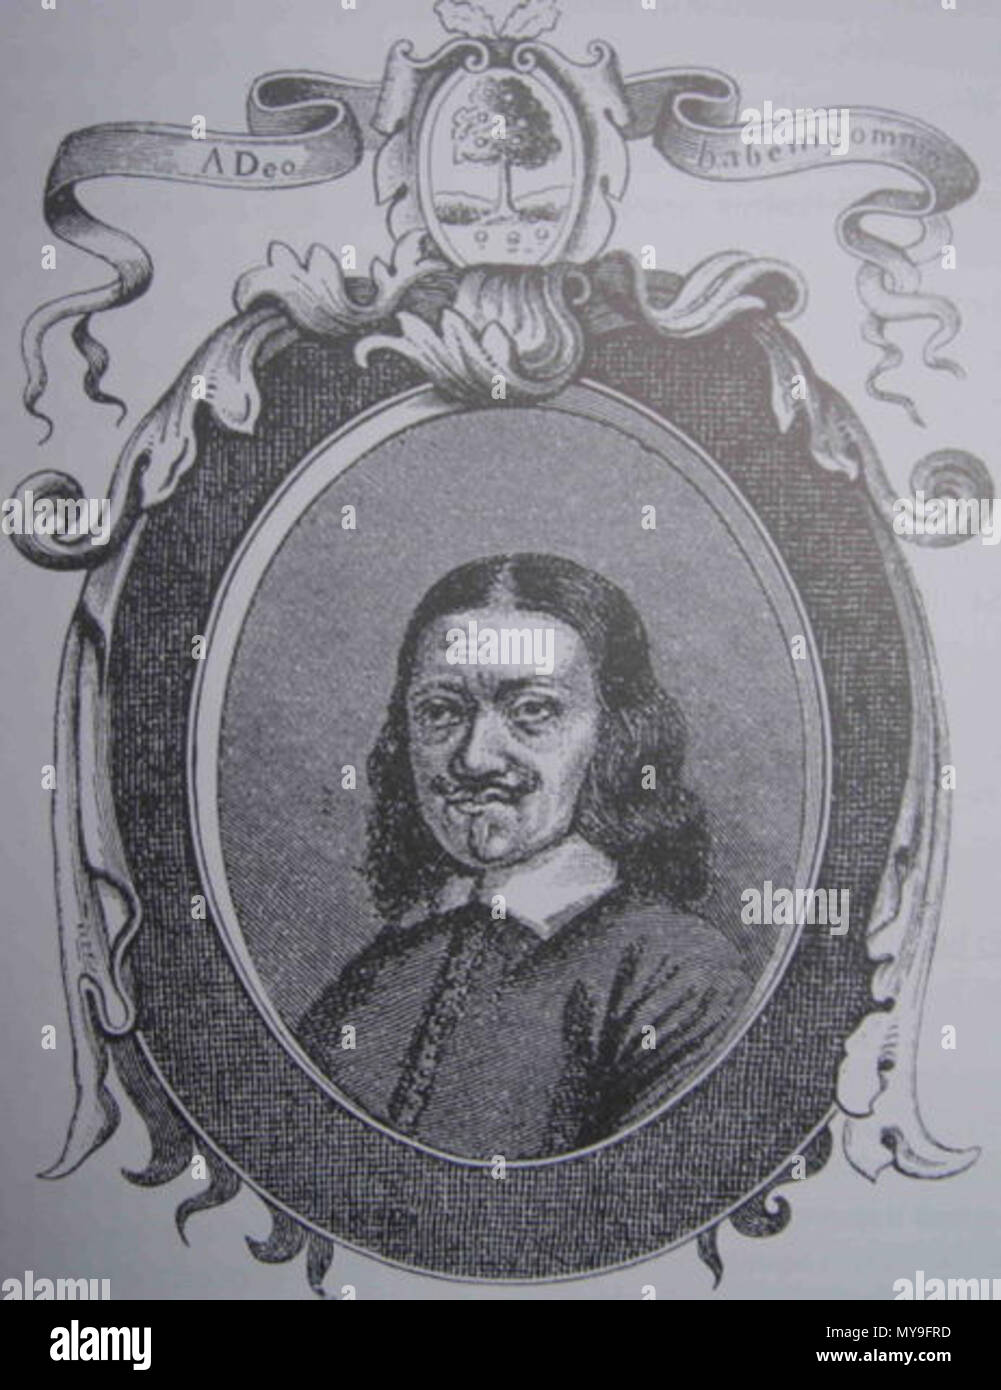 . English: Johannes Mejer (1606-1674), Danish mathematician and map maker (see Category:Maps by Johannes Mejer Dansk: Johannes Mejer (1606-1674), dansk kartograf. Unknown date but very likely more than 70 year ago. Unknown 278 JohannesMejer - Stock Image